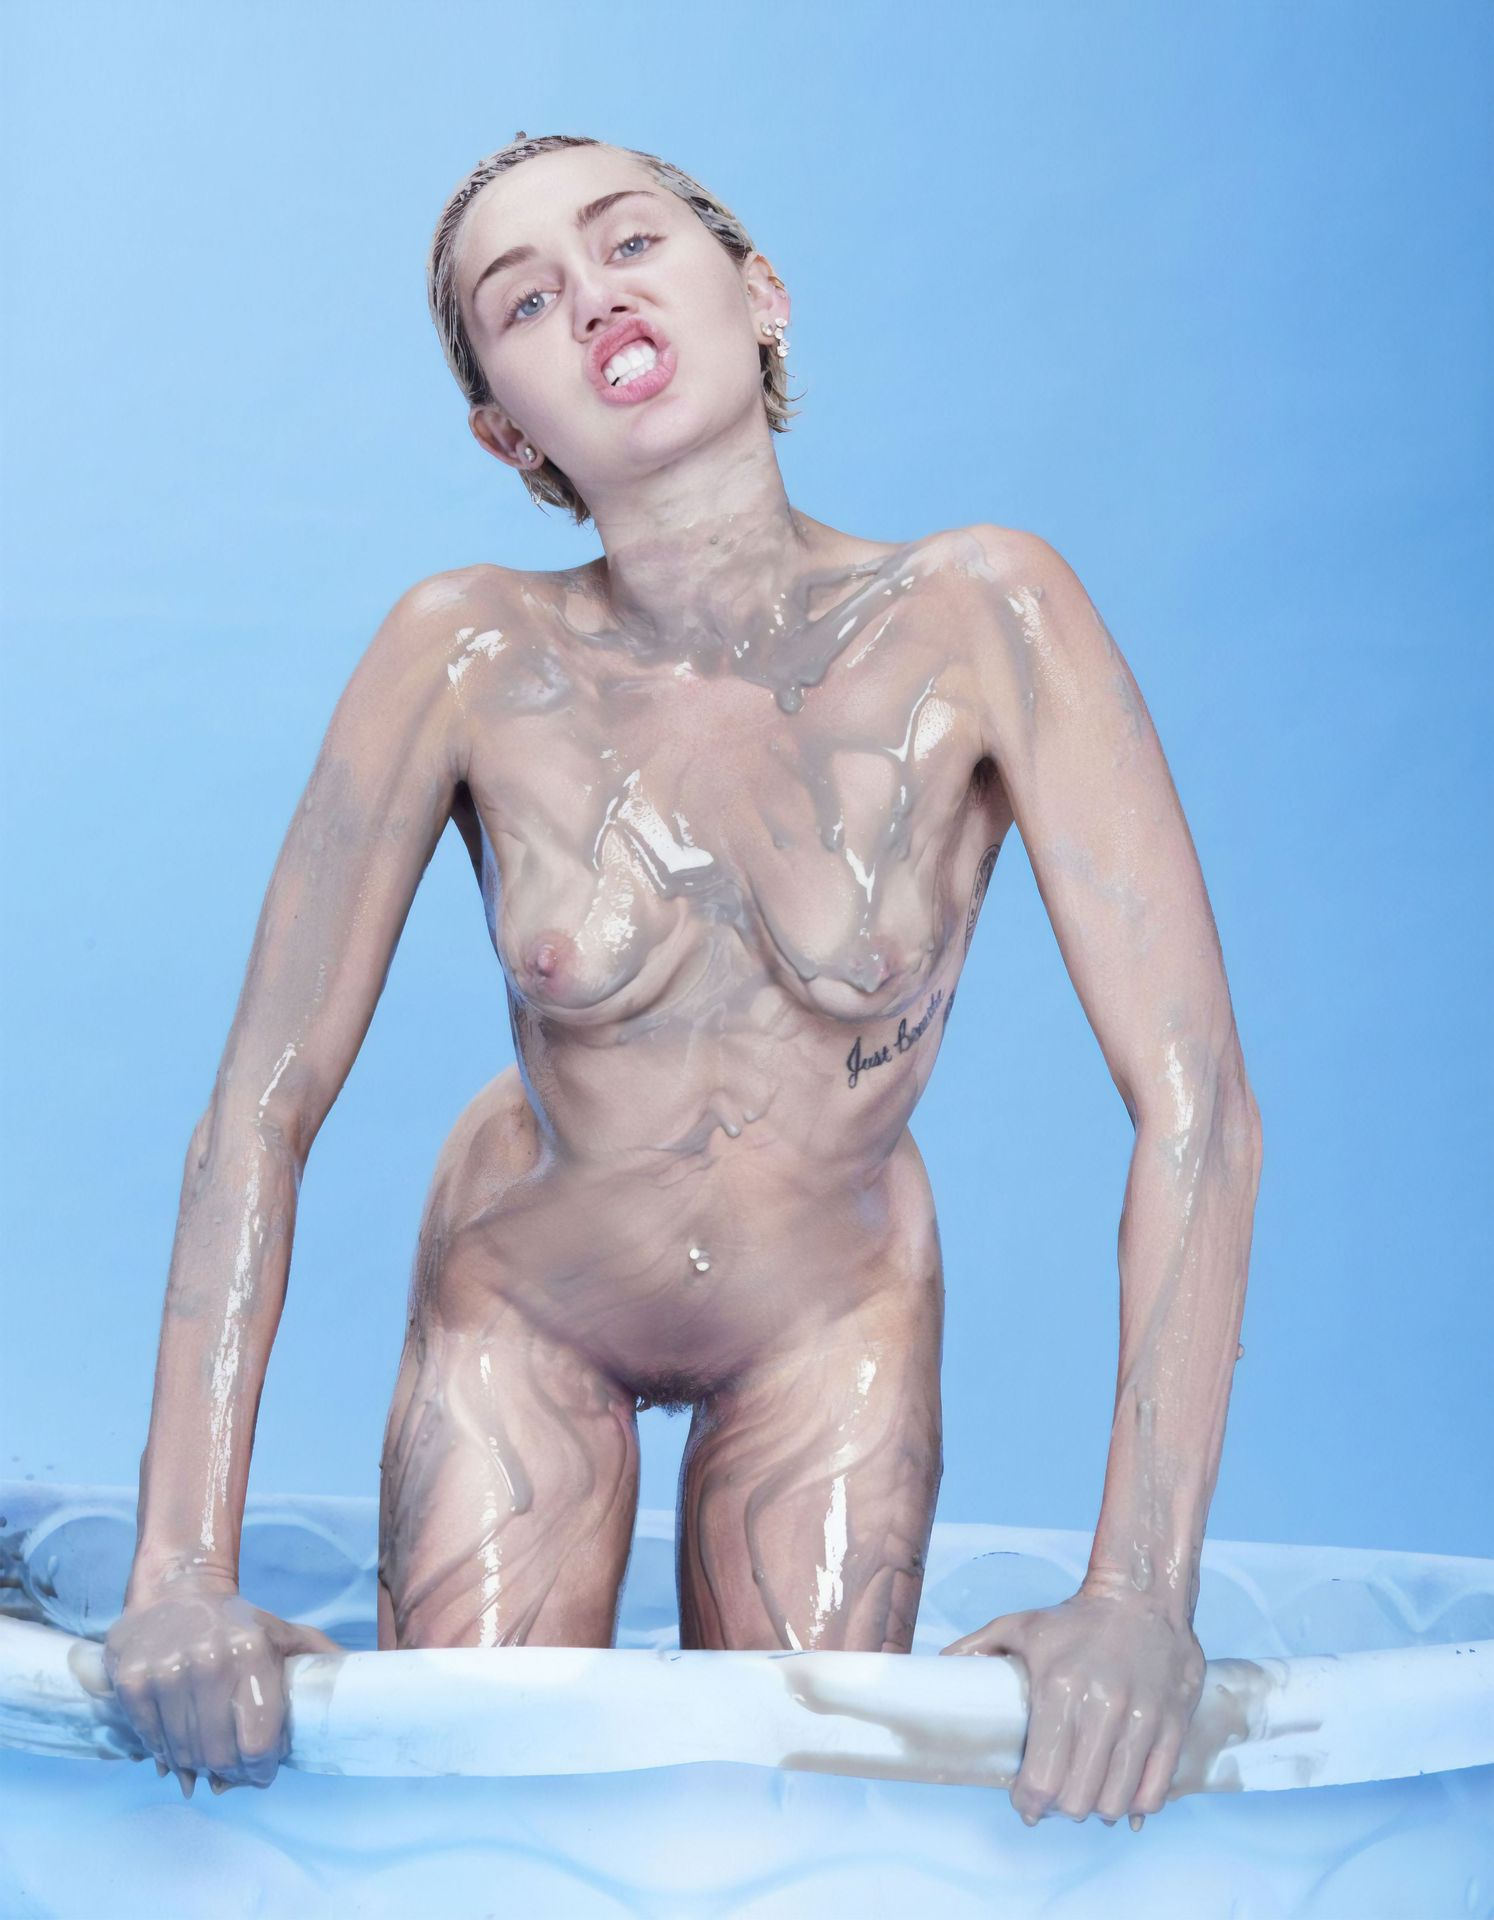 Pictures of miley cyrus naked getting fucked hard, sexy nude pictures of girls